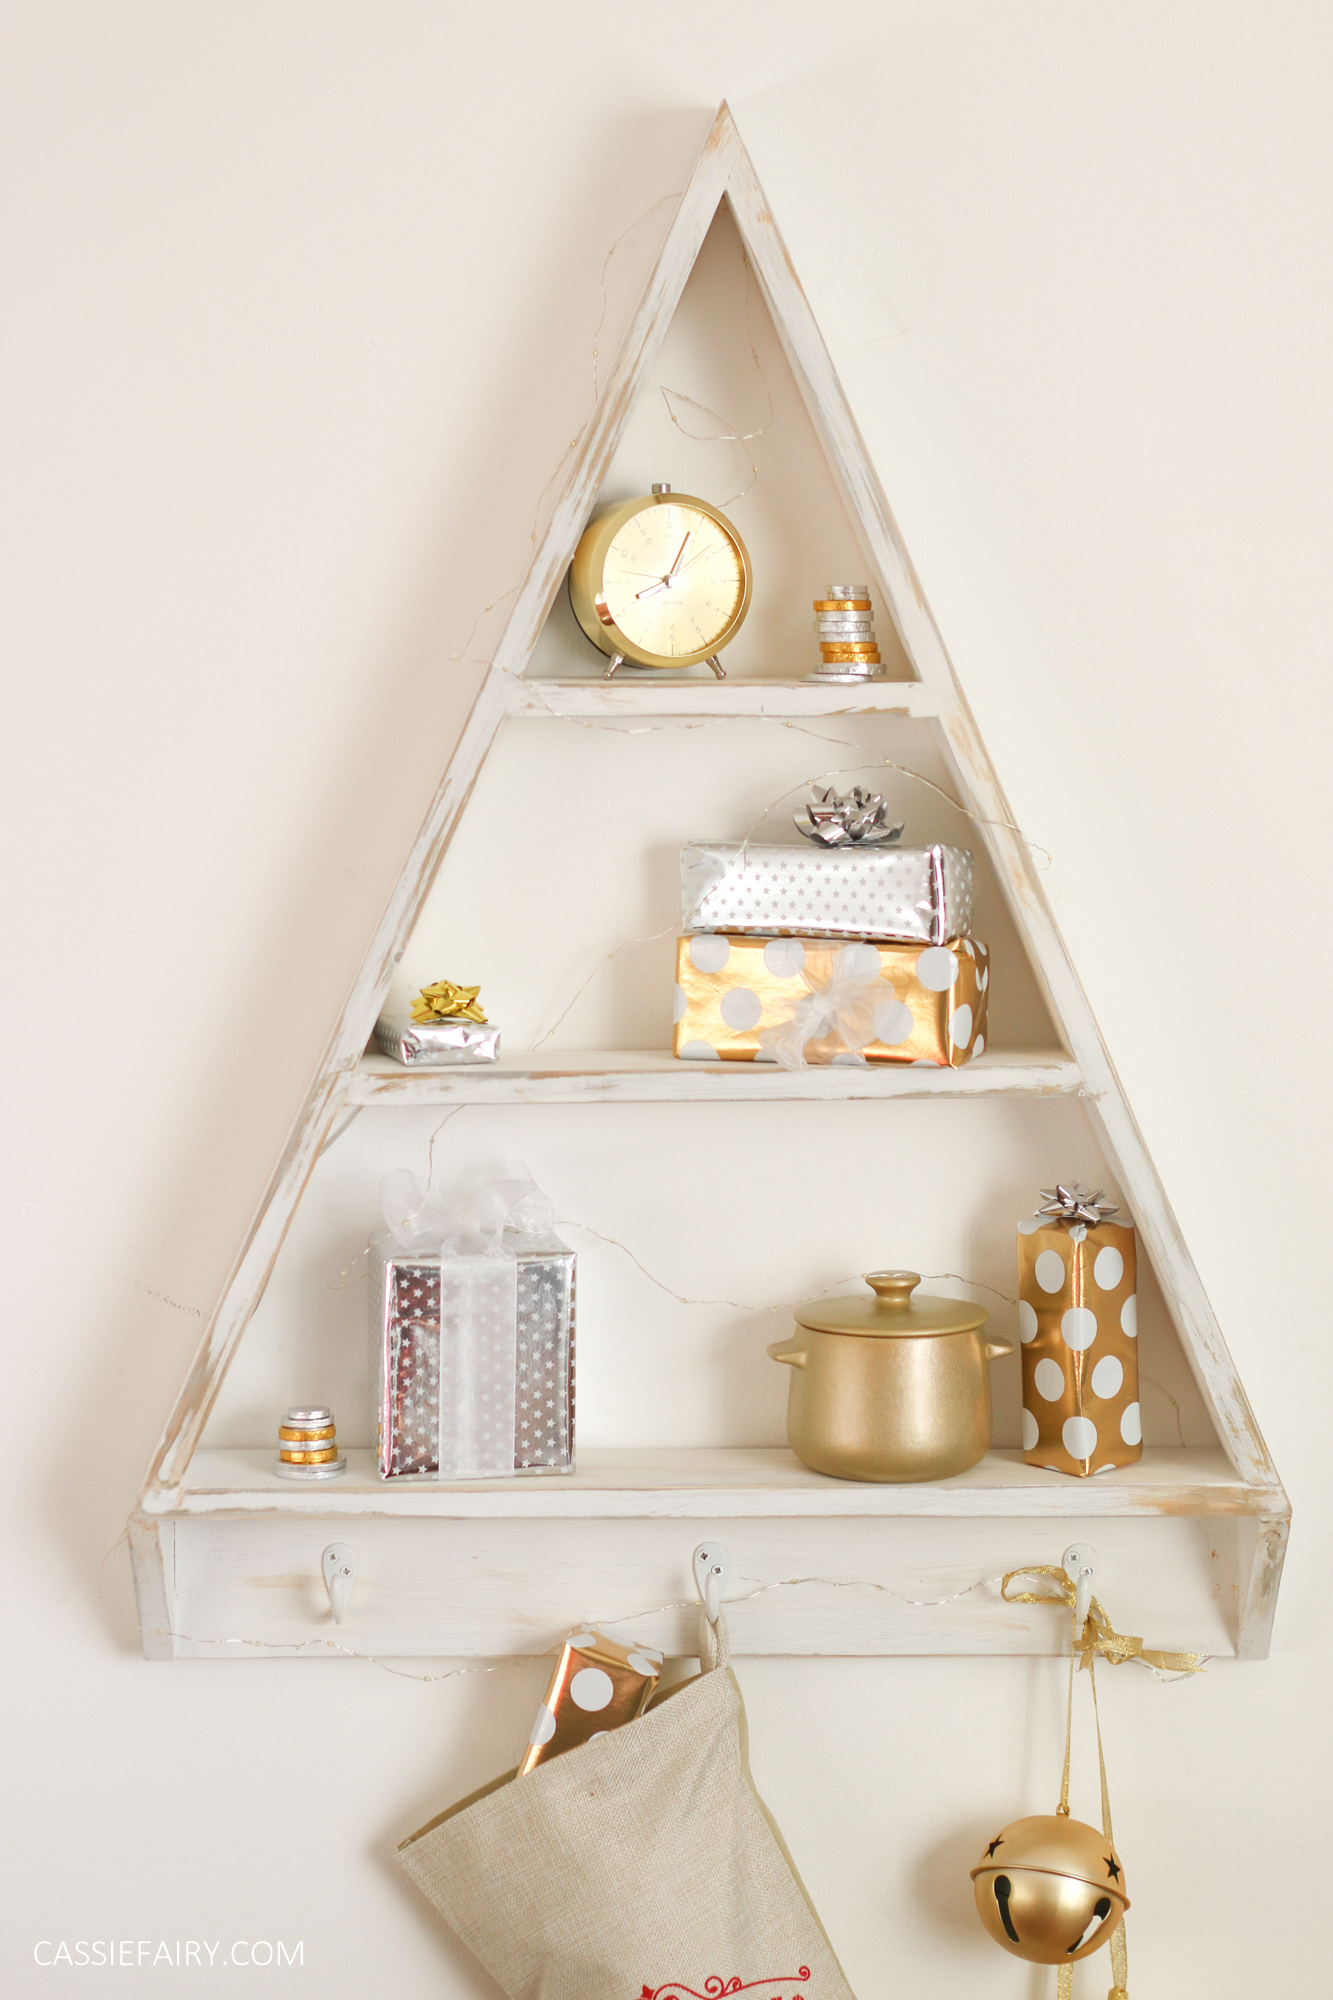 I Loved Making The Christmas Tree Wall Unit And Itu0027s Actually Rather Handy  Shelving For All Year Round. I Love A Bit Of Gold In My Office, ...